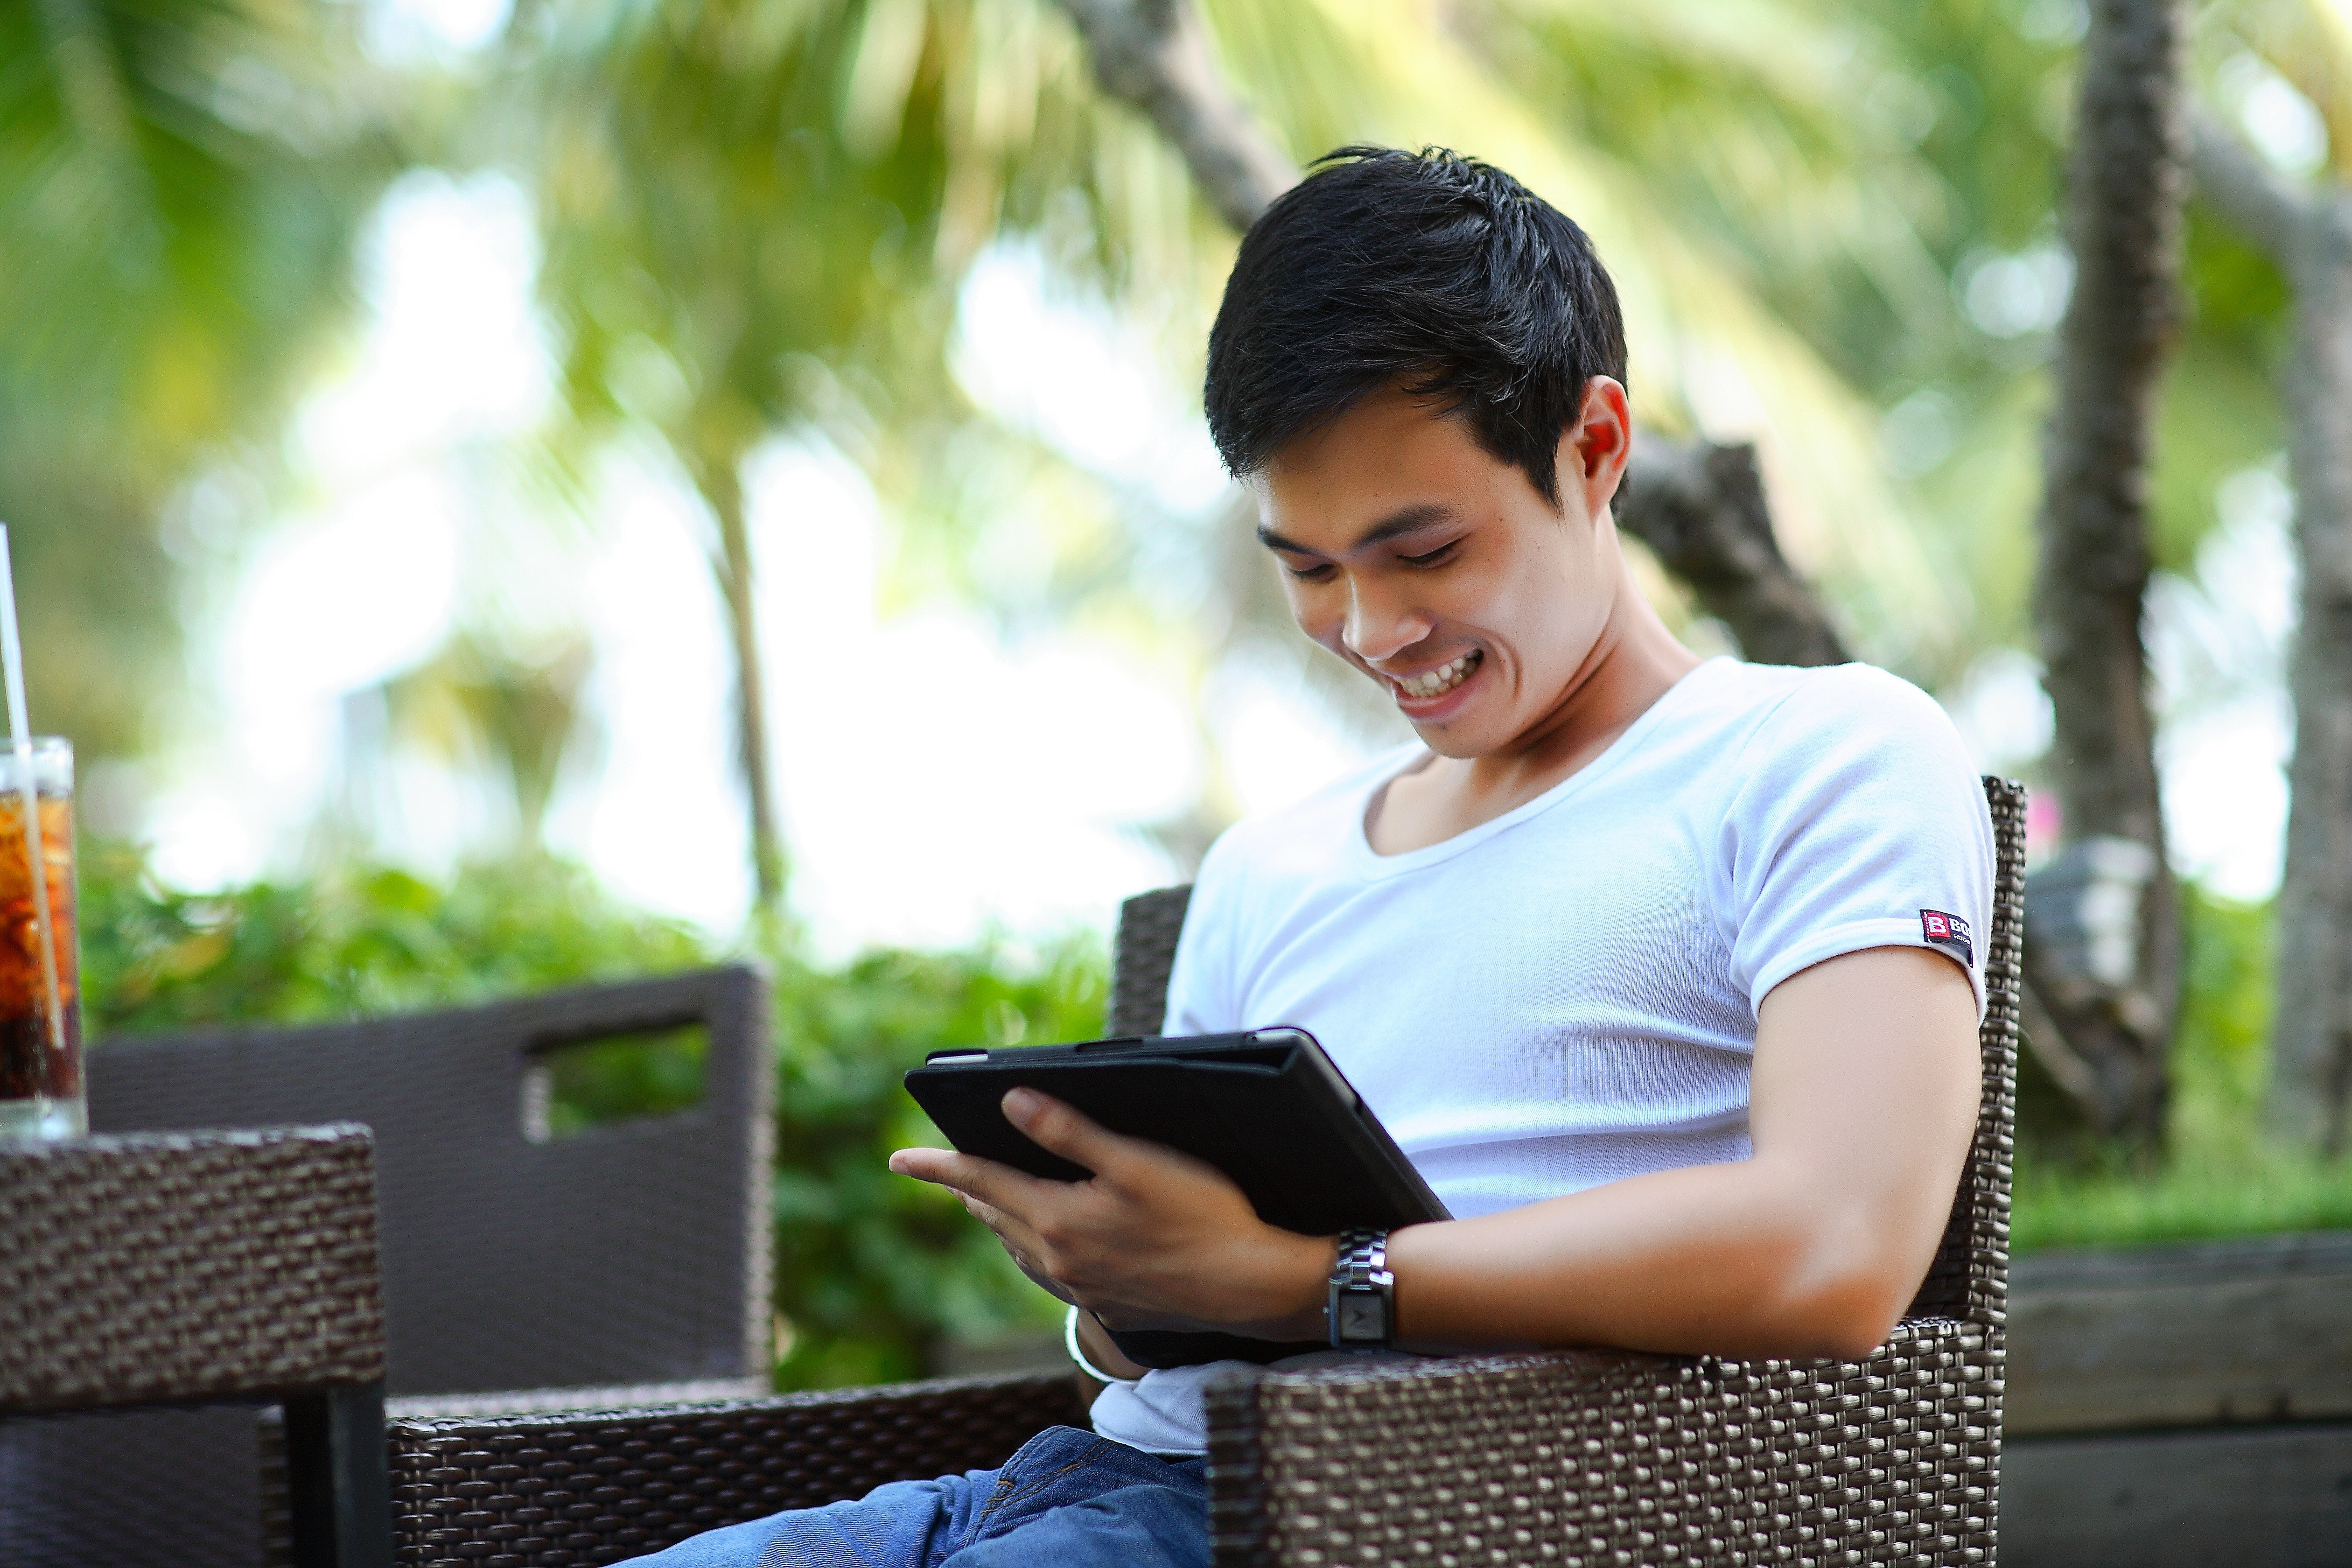 A student smiles as he looks down and smiles while working on his tablet